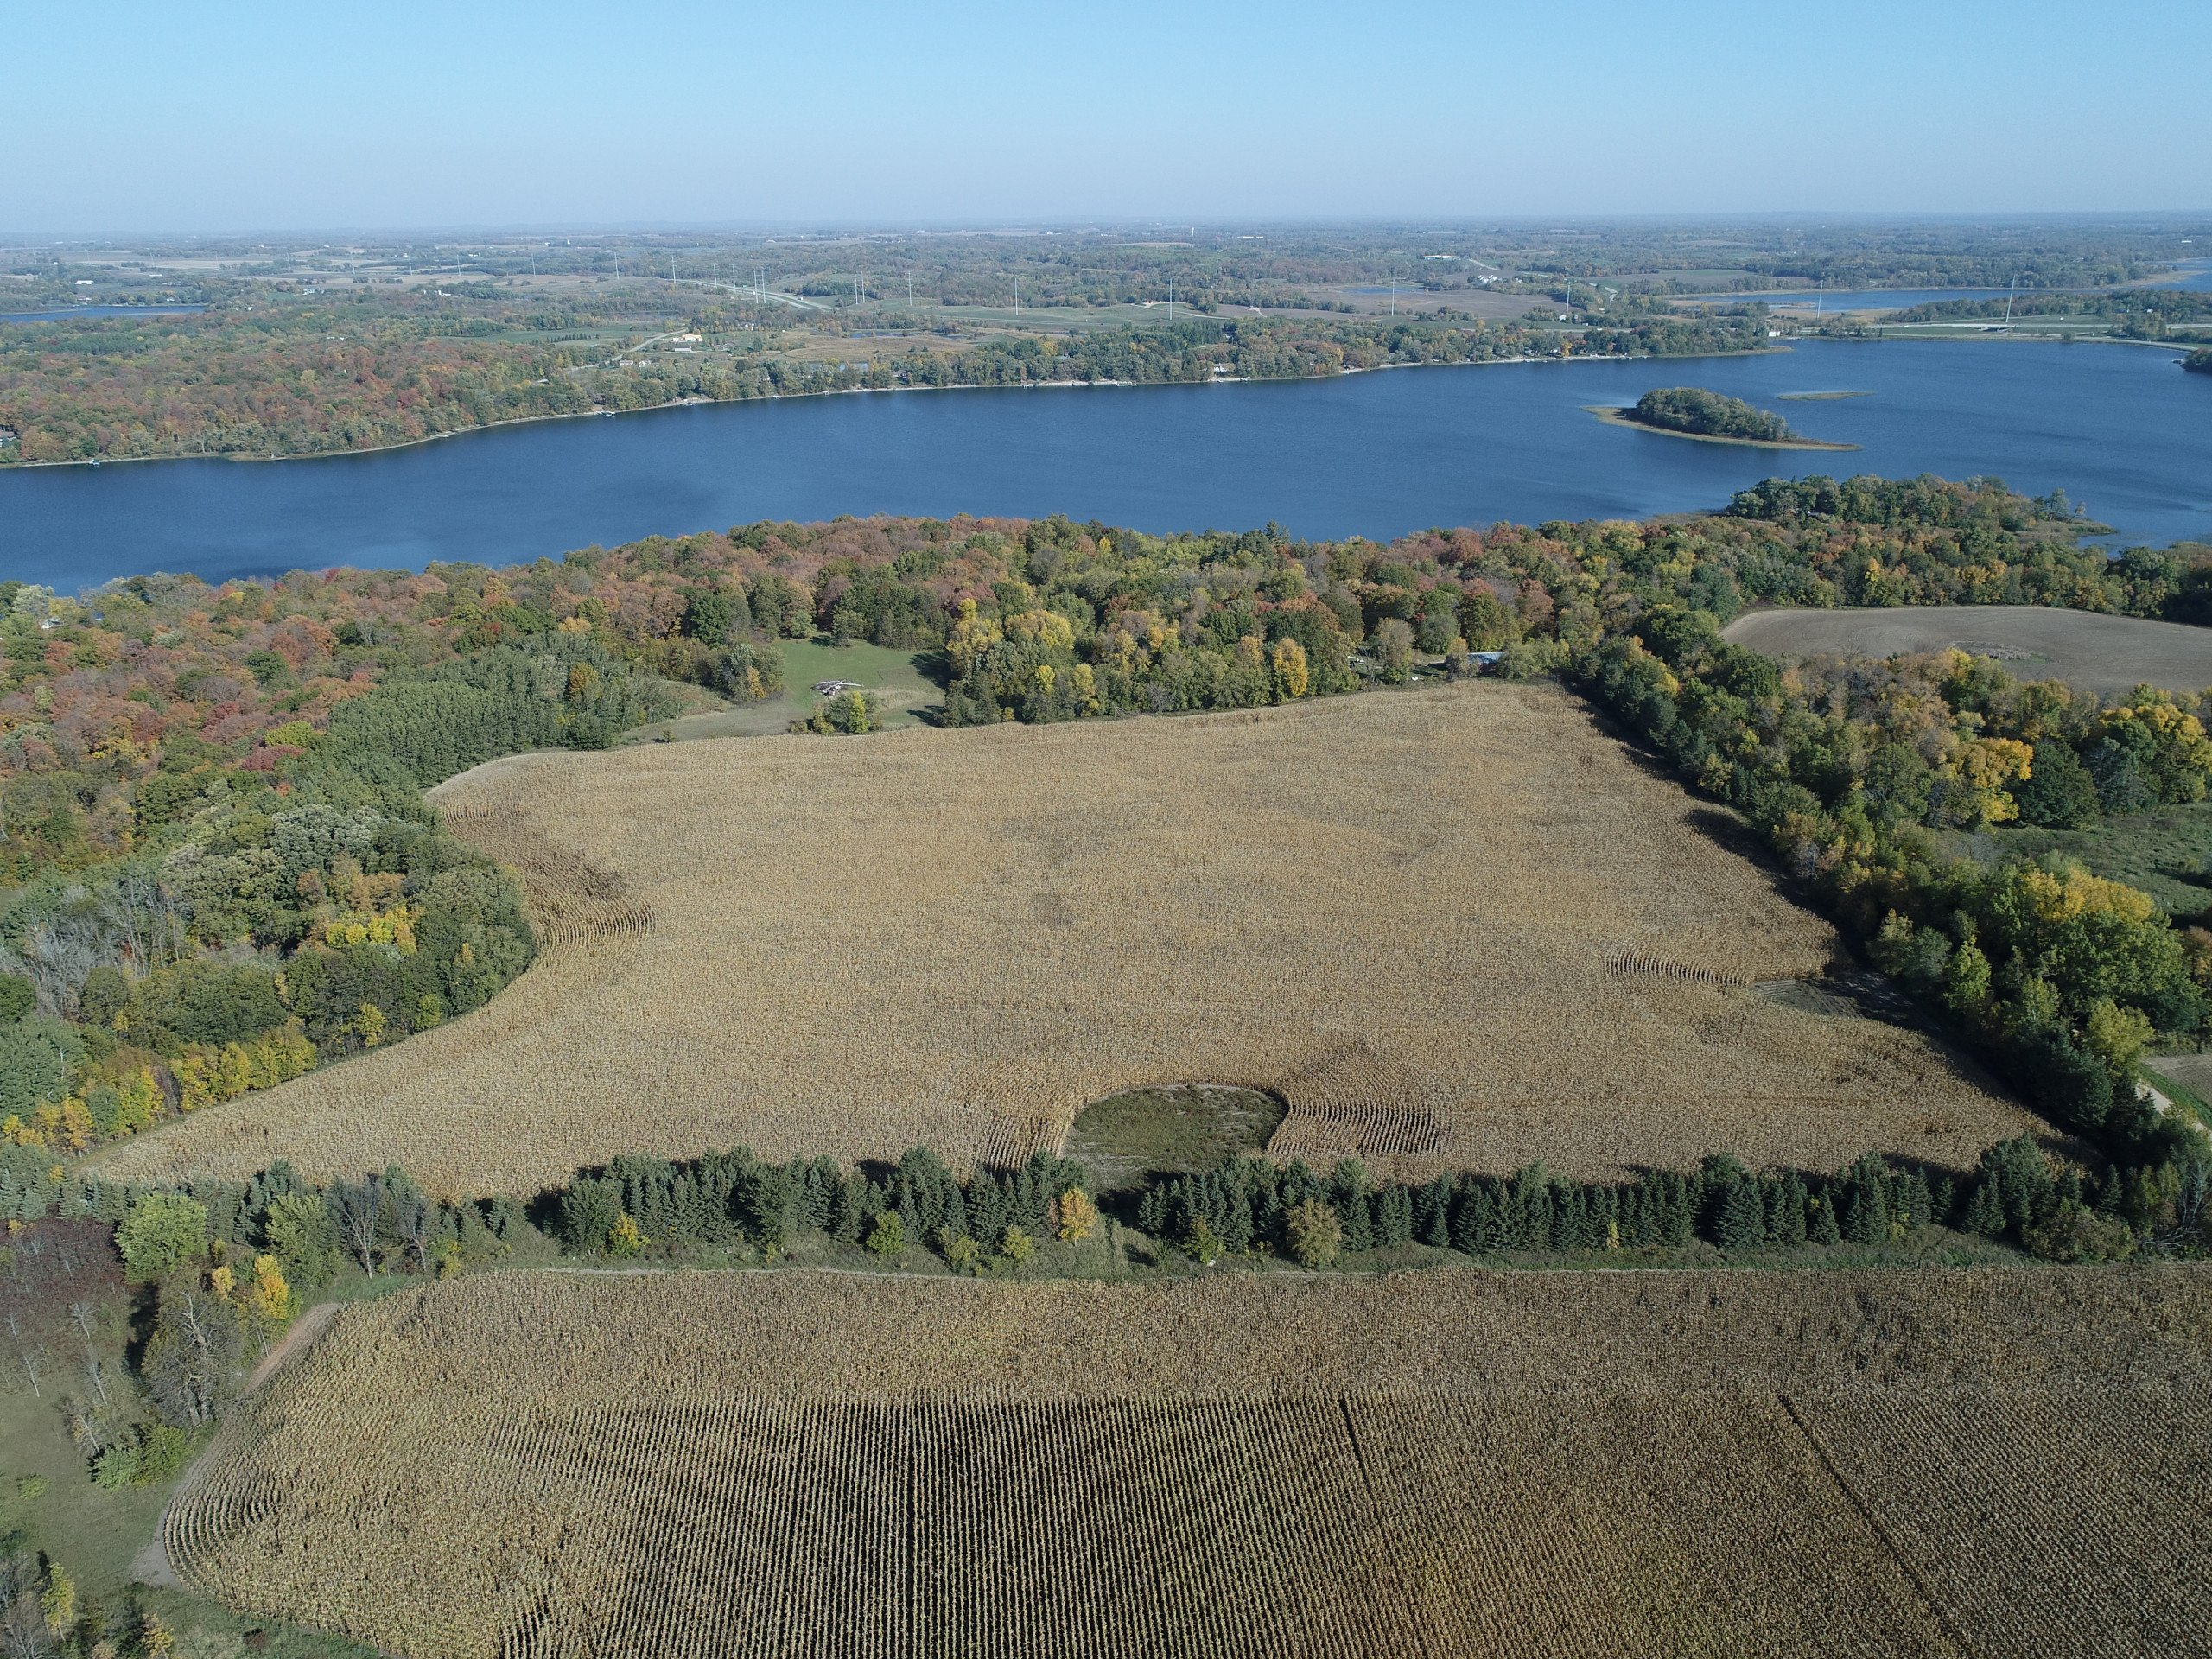 residential-auctions-land-douglas-county-minnesota-40-acres-listing-number-15777-field and lakeshore-0.jpg